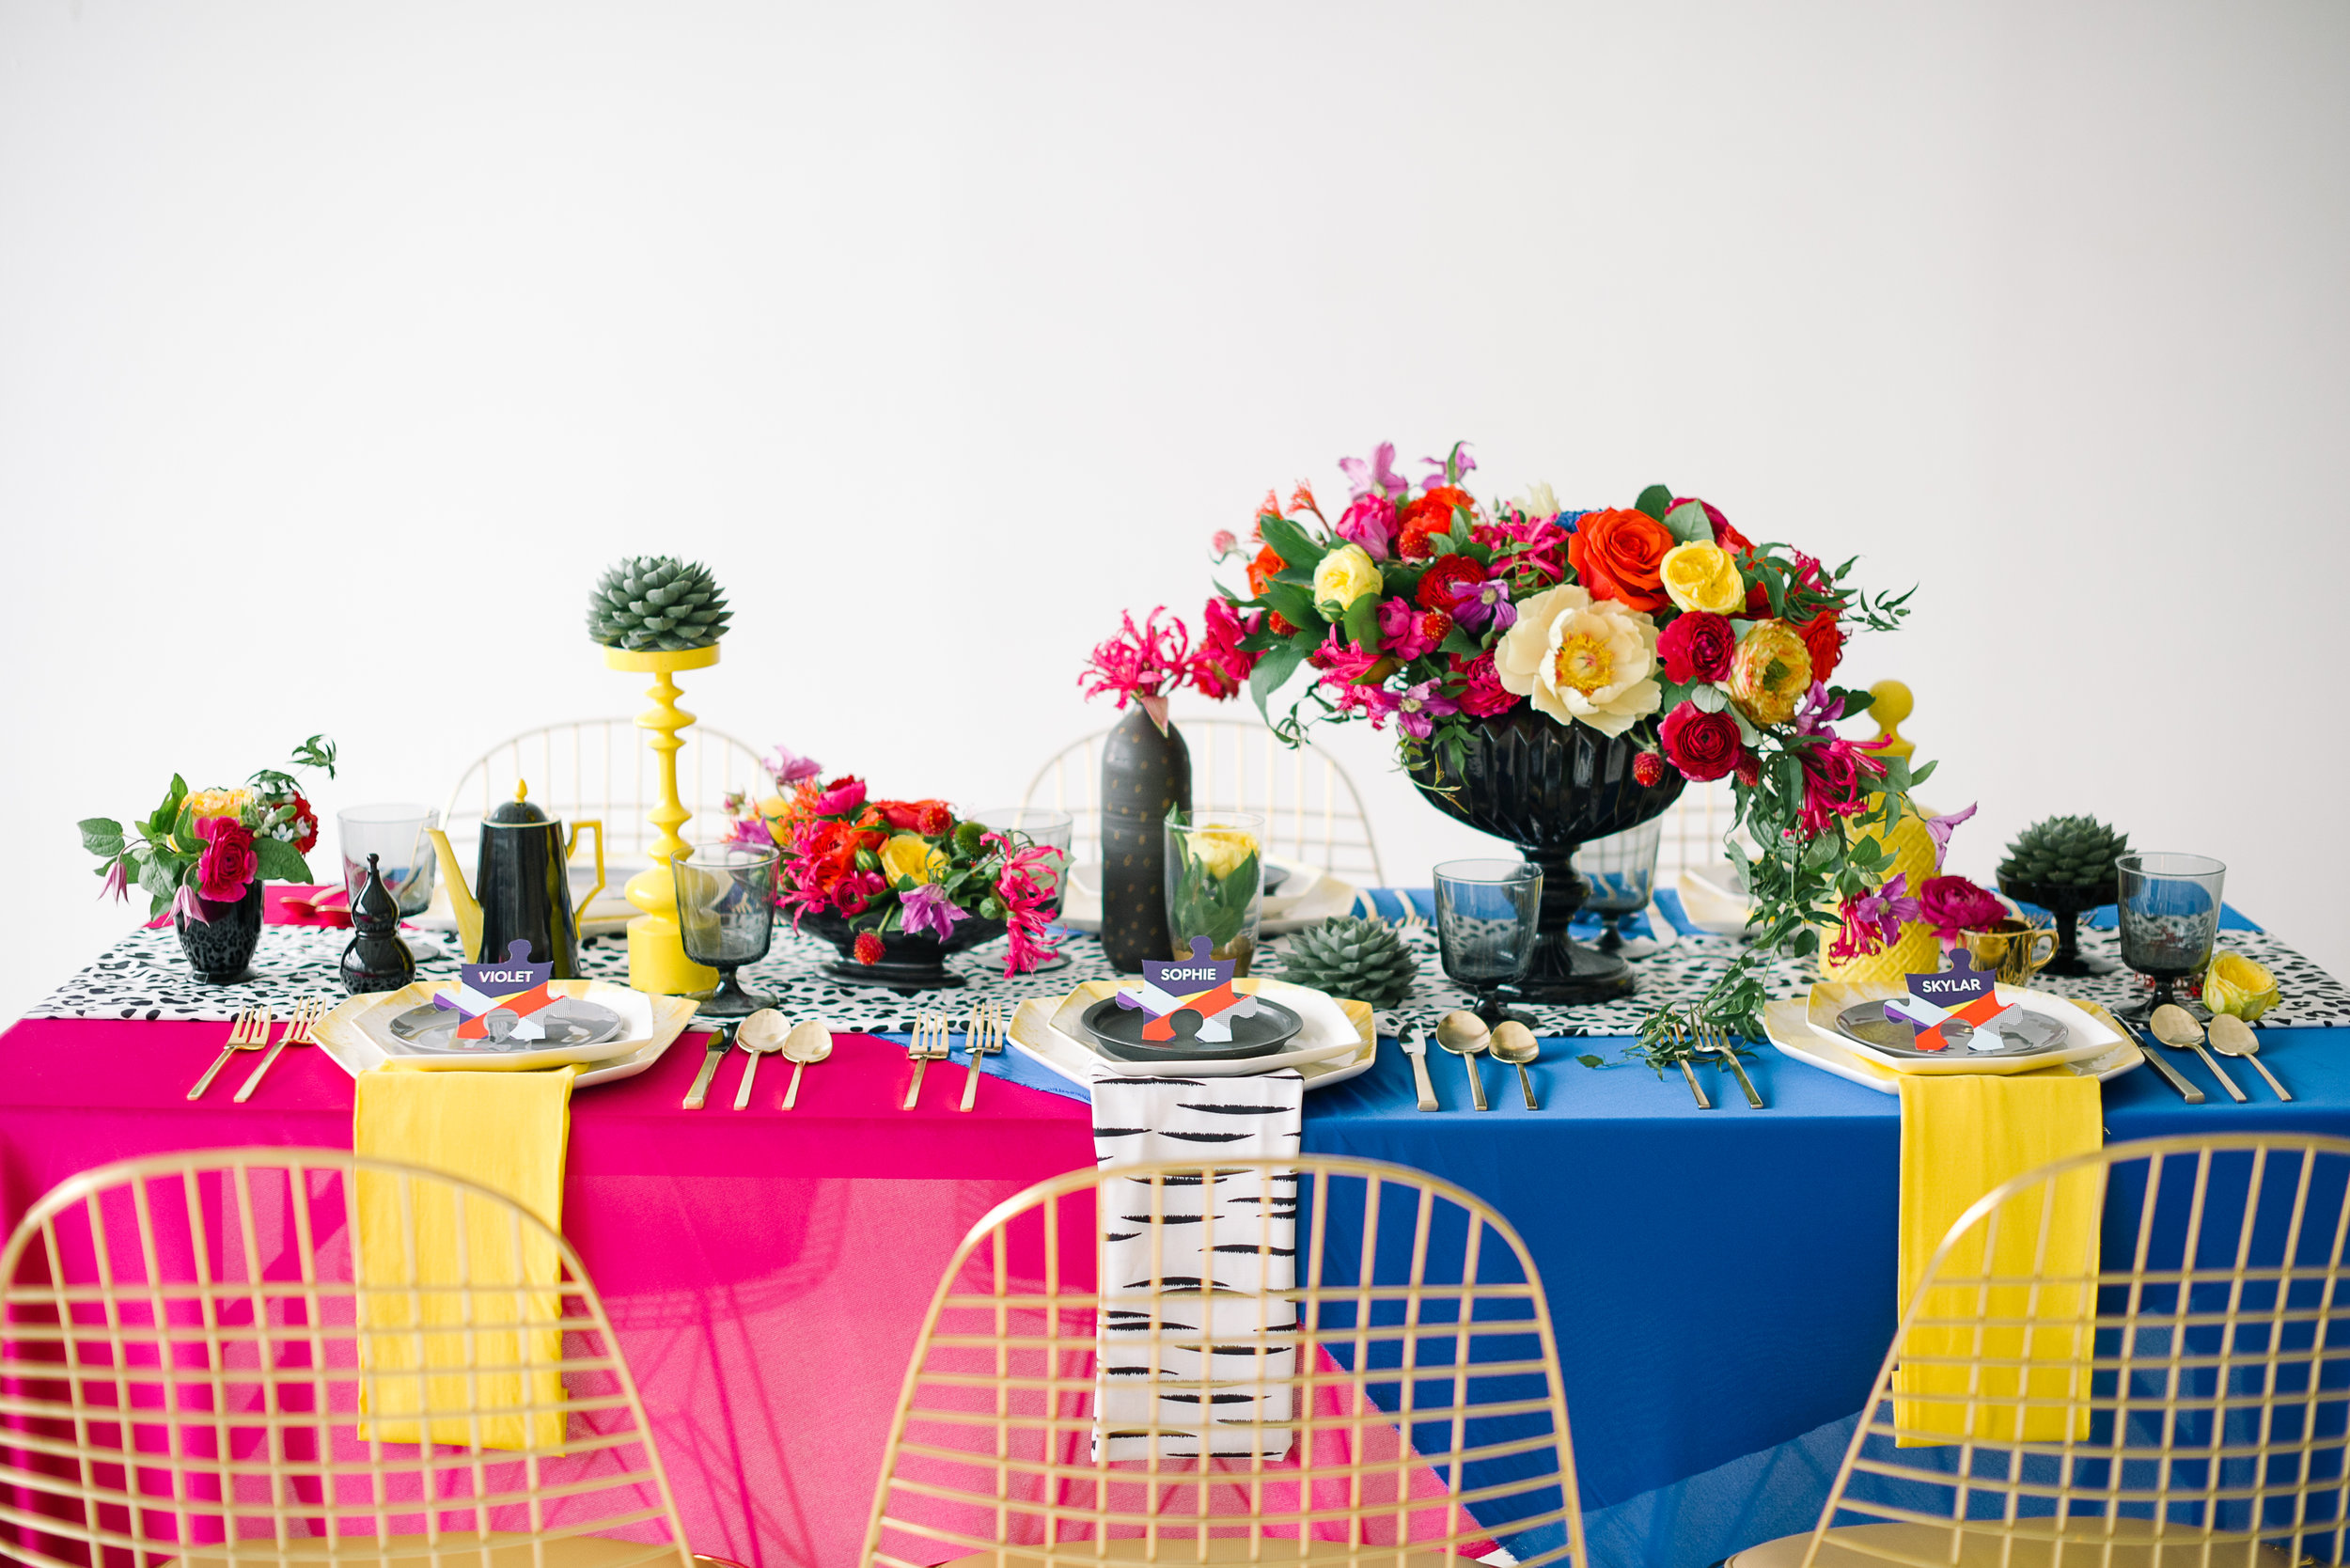 inspired by this - 2017 WEDDING TRENDS EVERYONE WILL LOVE